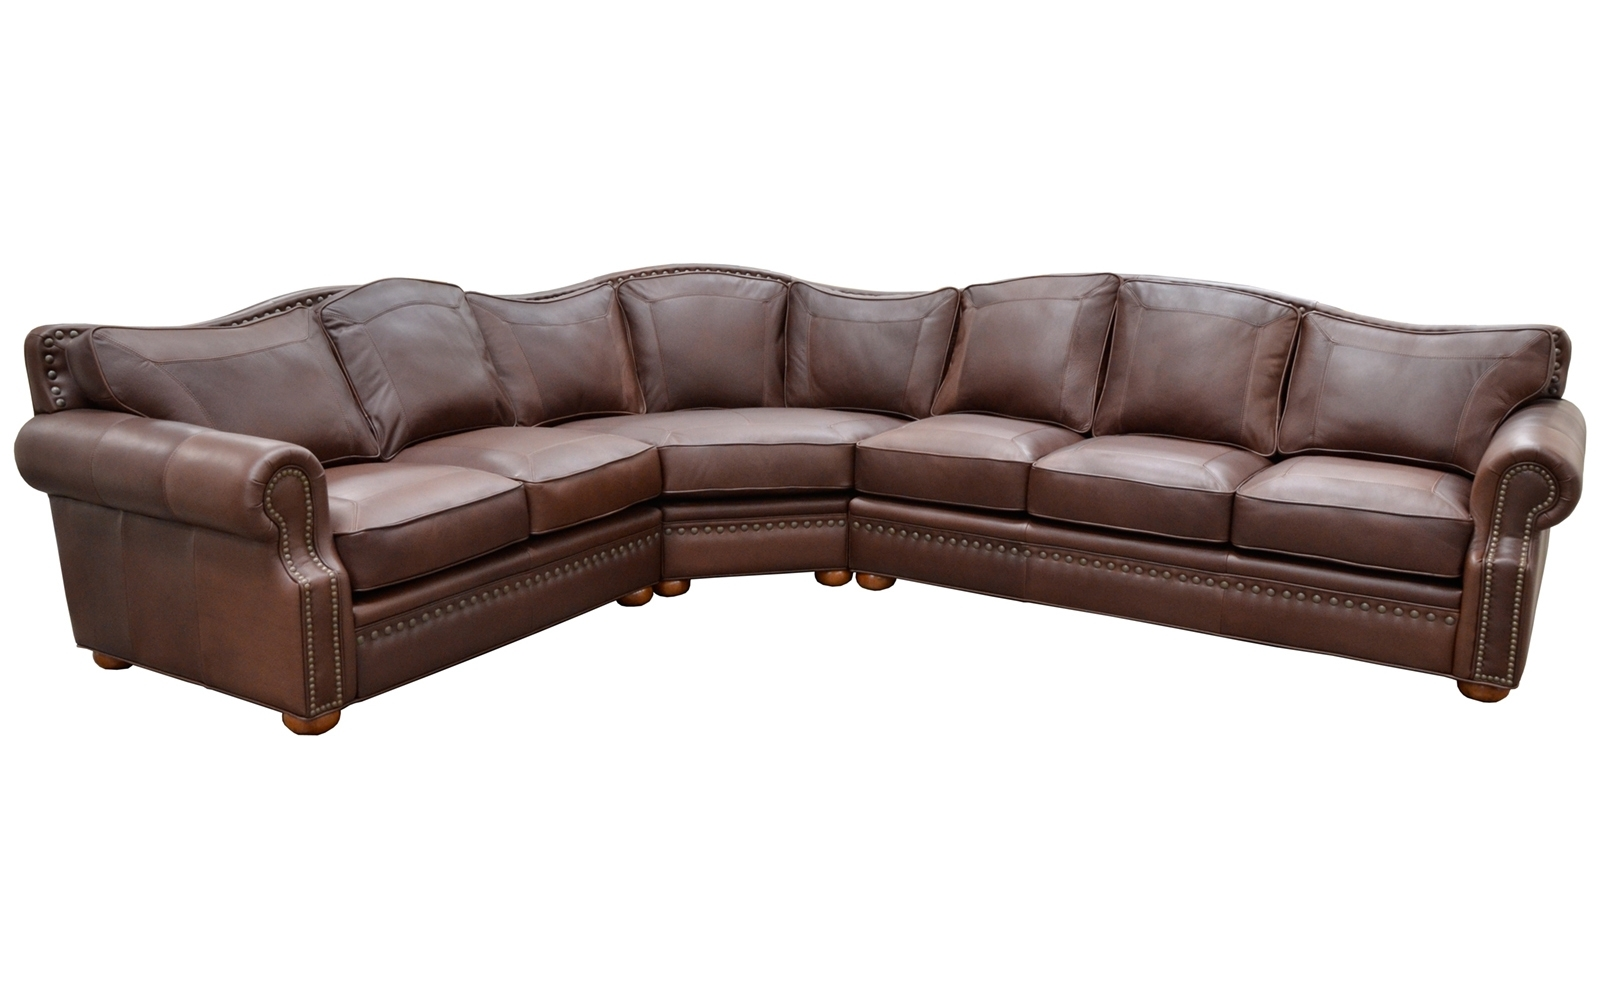 Tucson Sectional Sofas With Regard To Preferred Tucson Sectional – Arizona Leather Interiors (View 20 of 20)